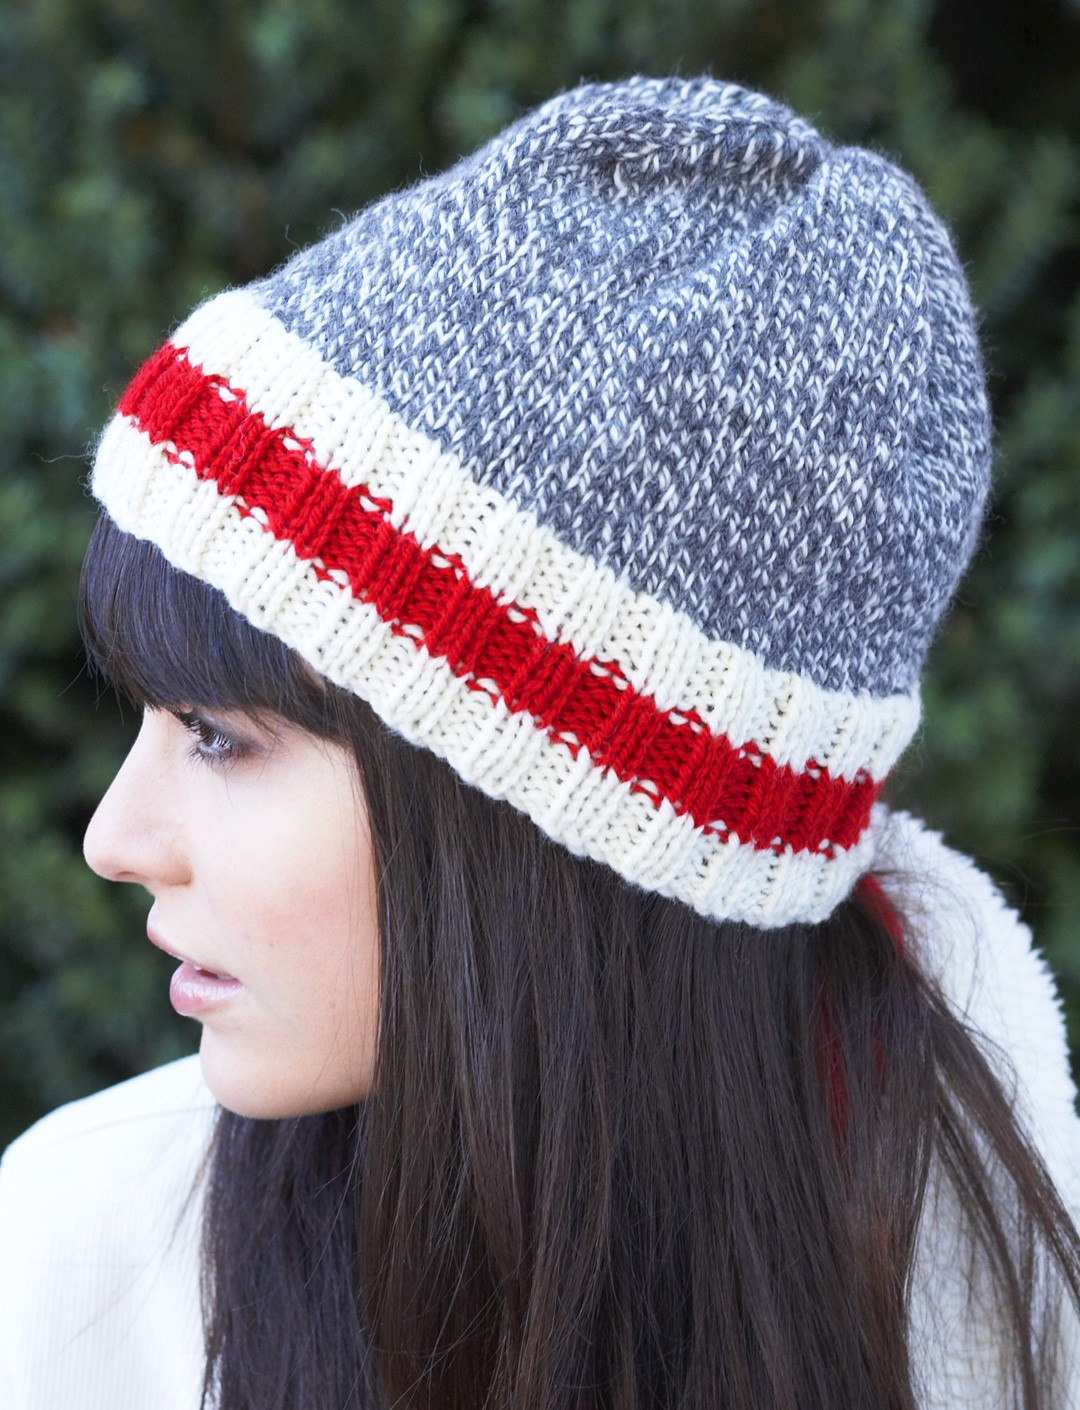 Sock Monkey Hat Knitting Pattern : Patons Work Sock Hat, Knit Pattern Yarnspirations